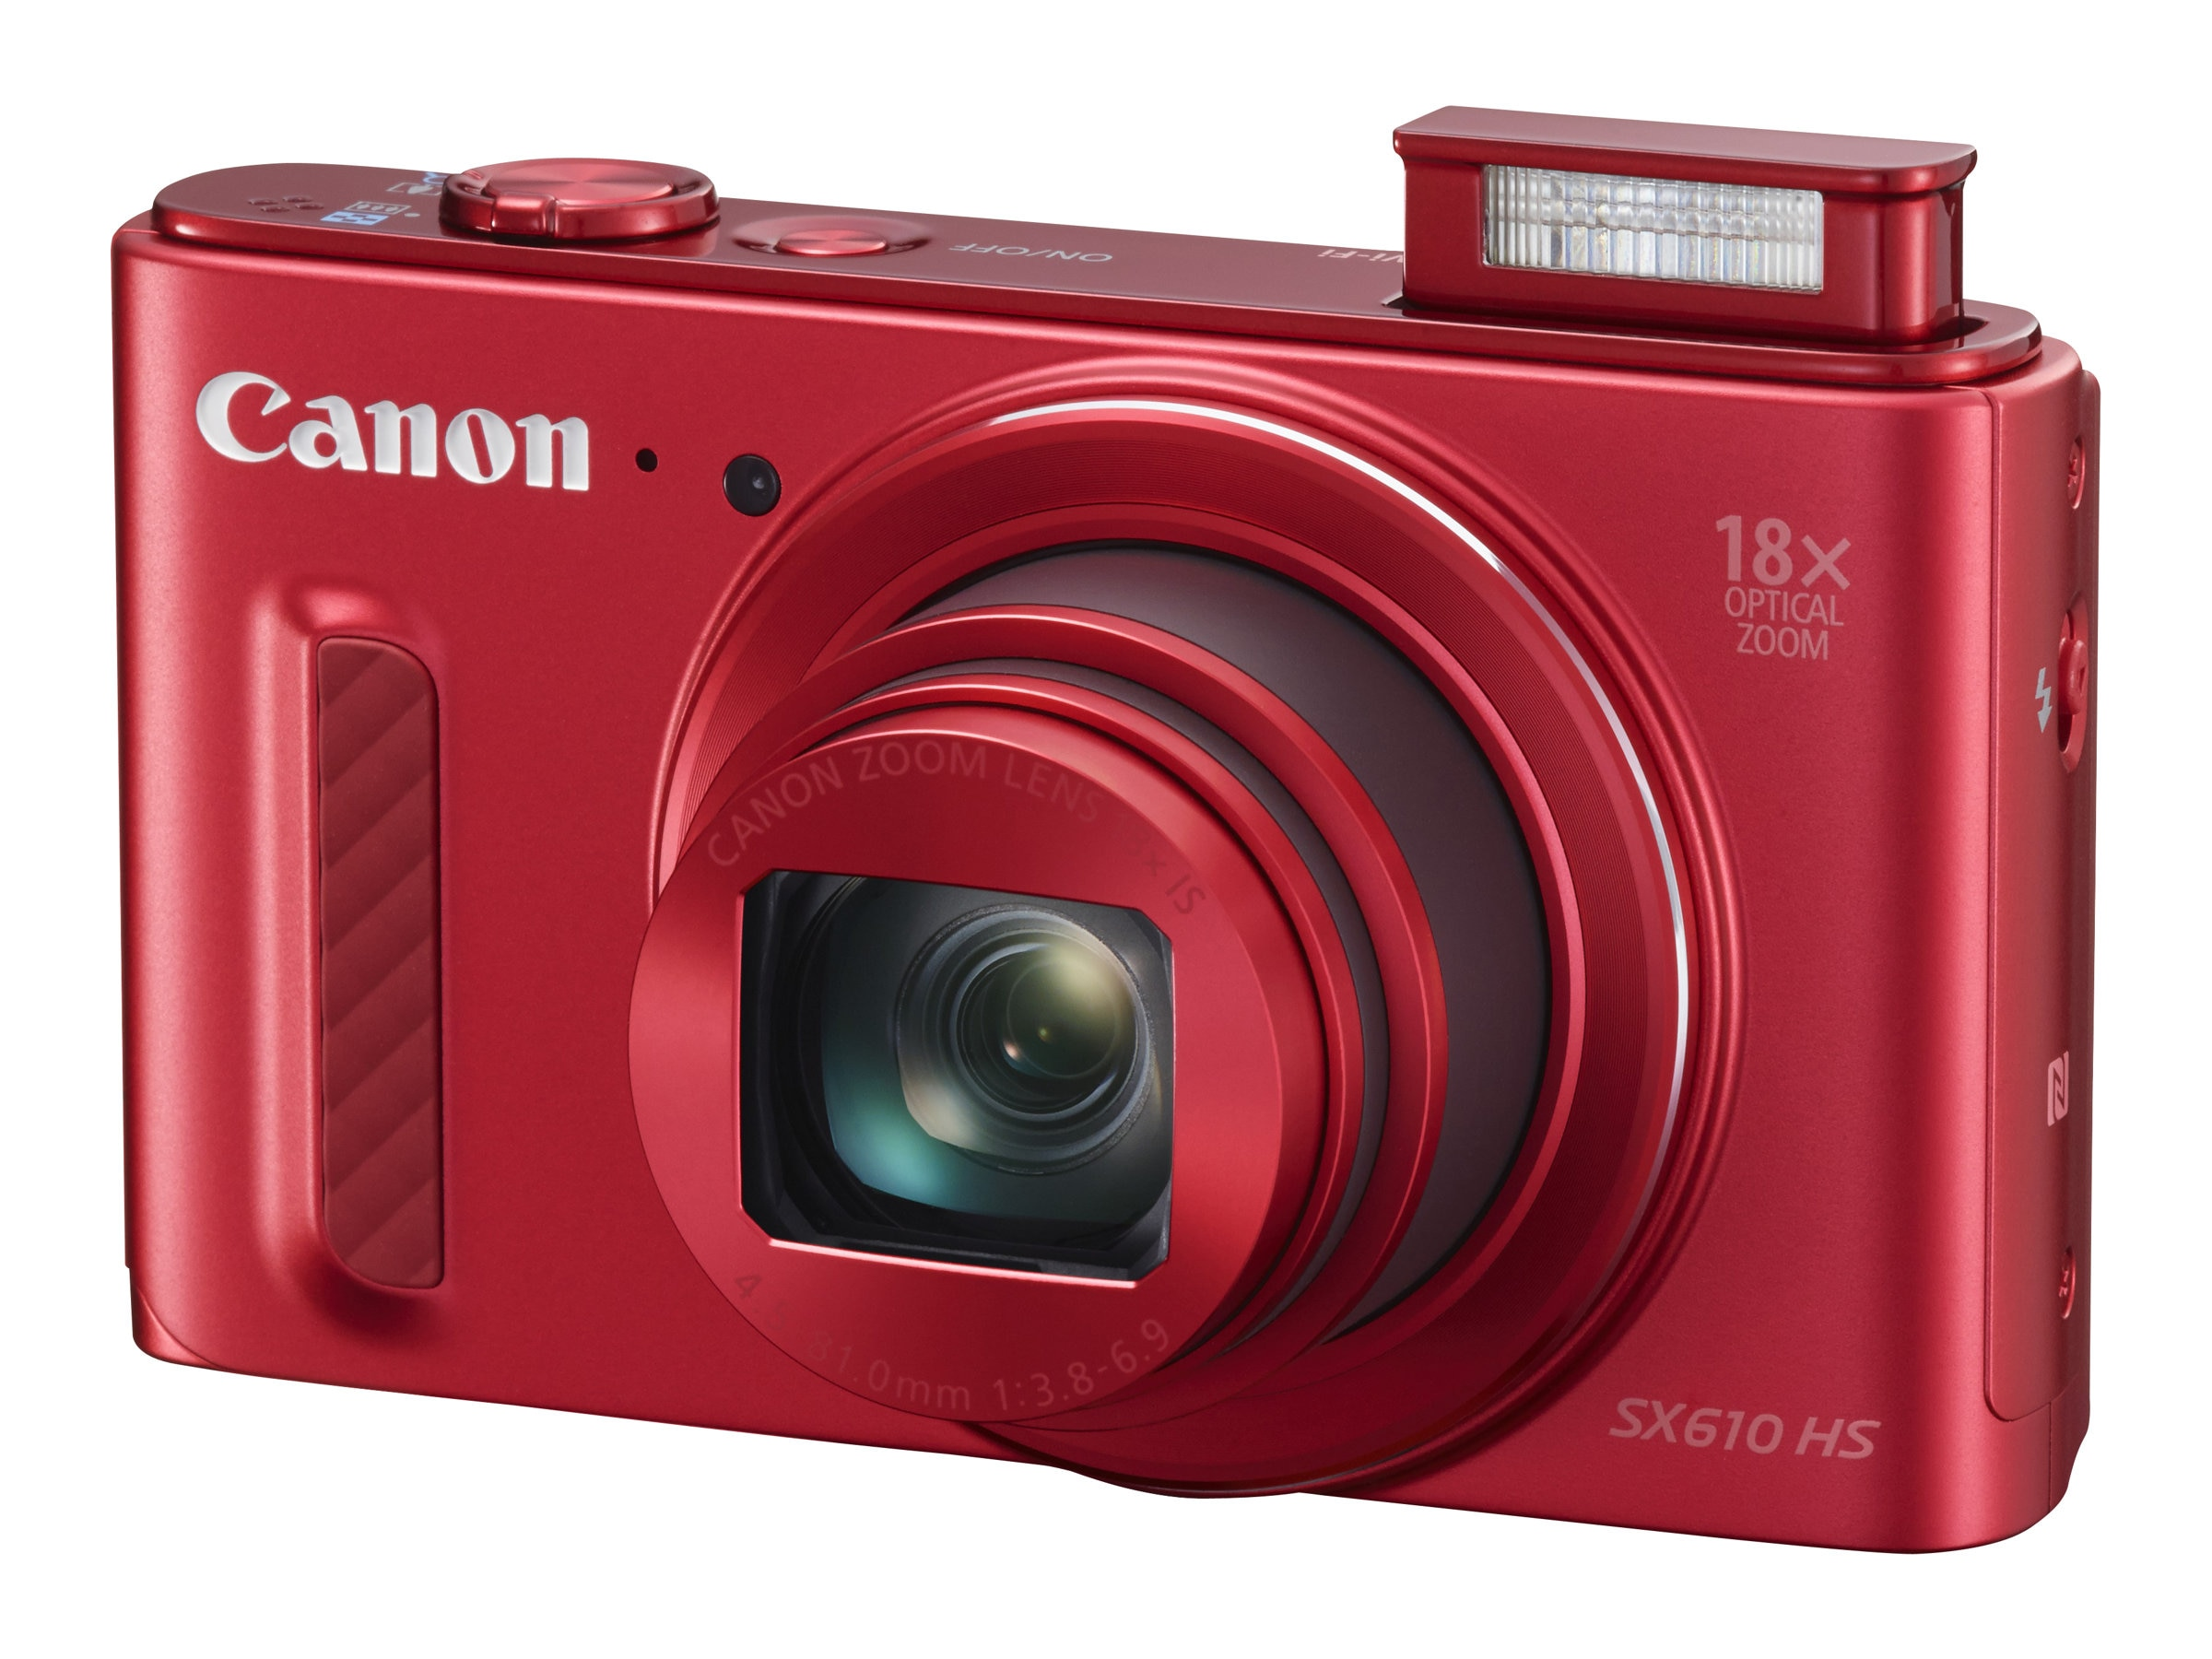 Canon Powershot SX610 HS Camera, 20.2MP, 18x Zoom, Red, 0113C001